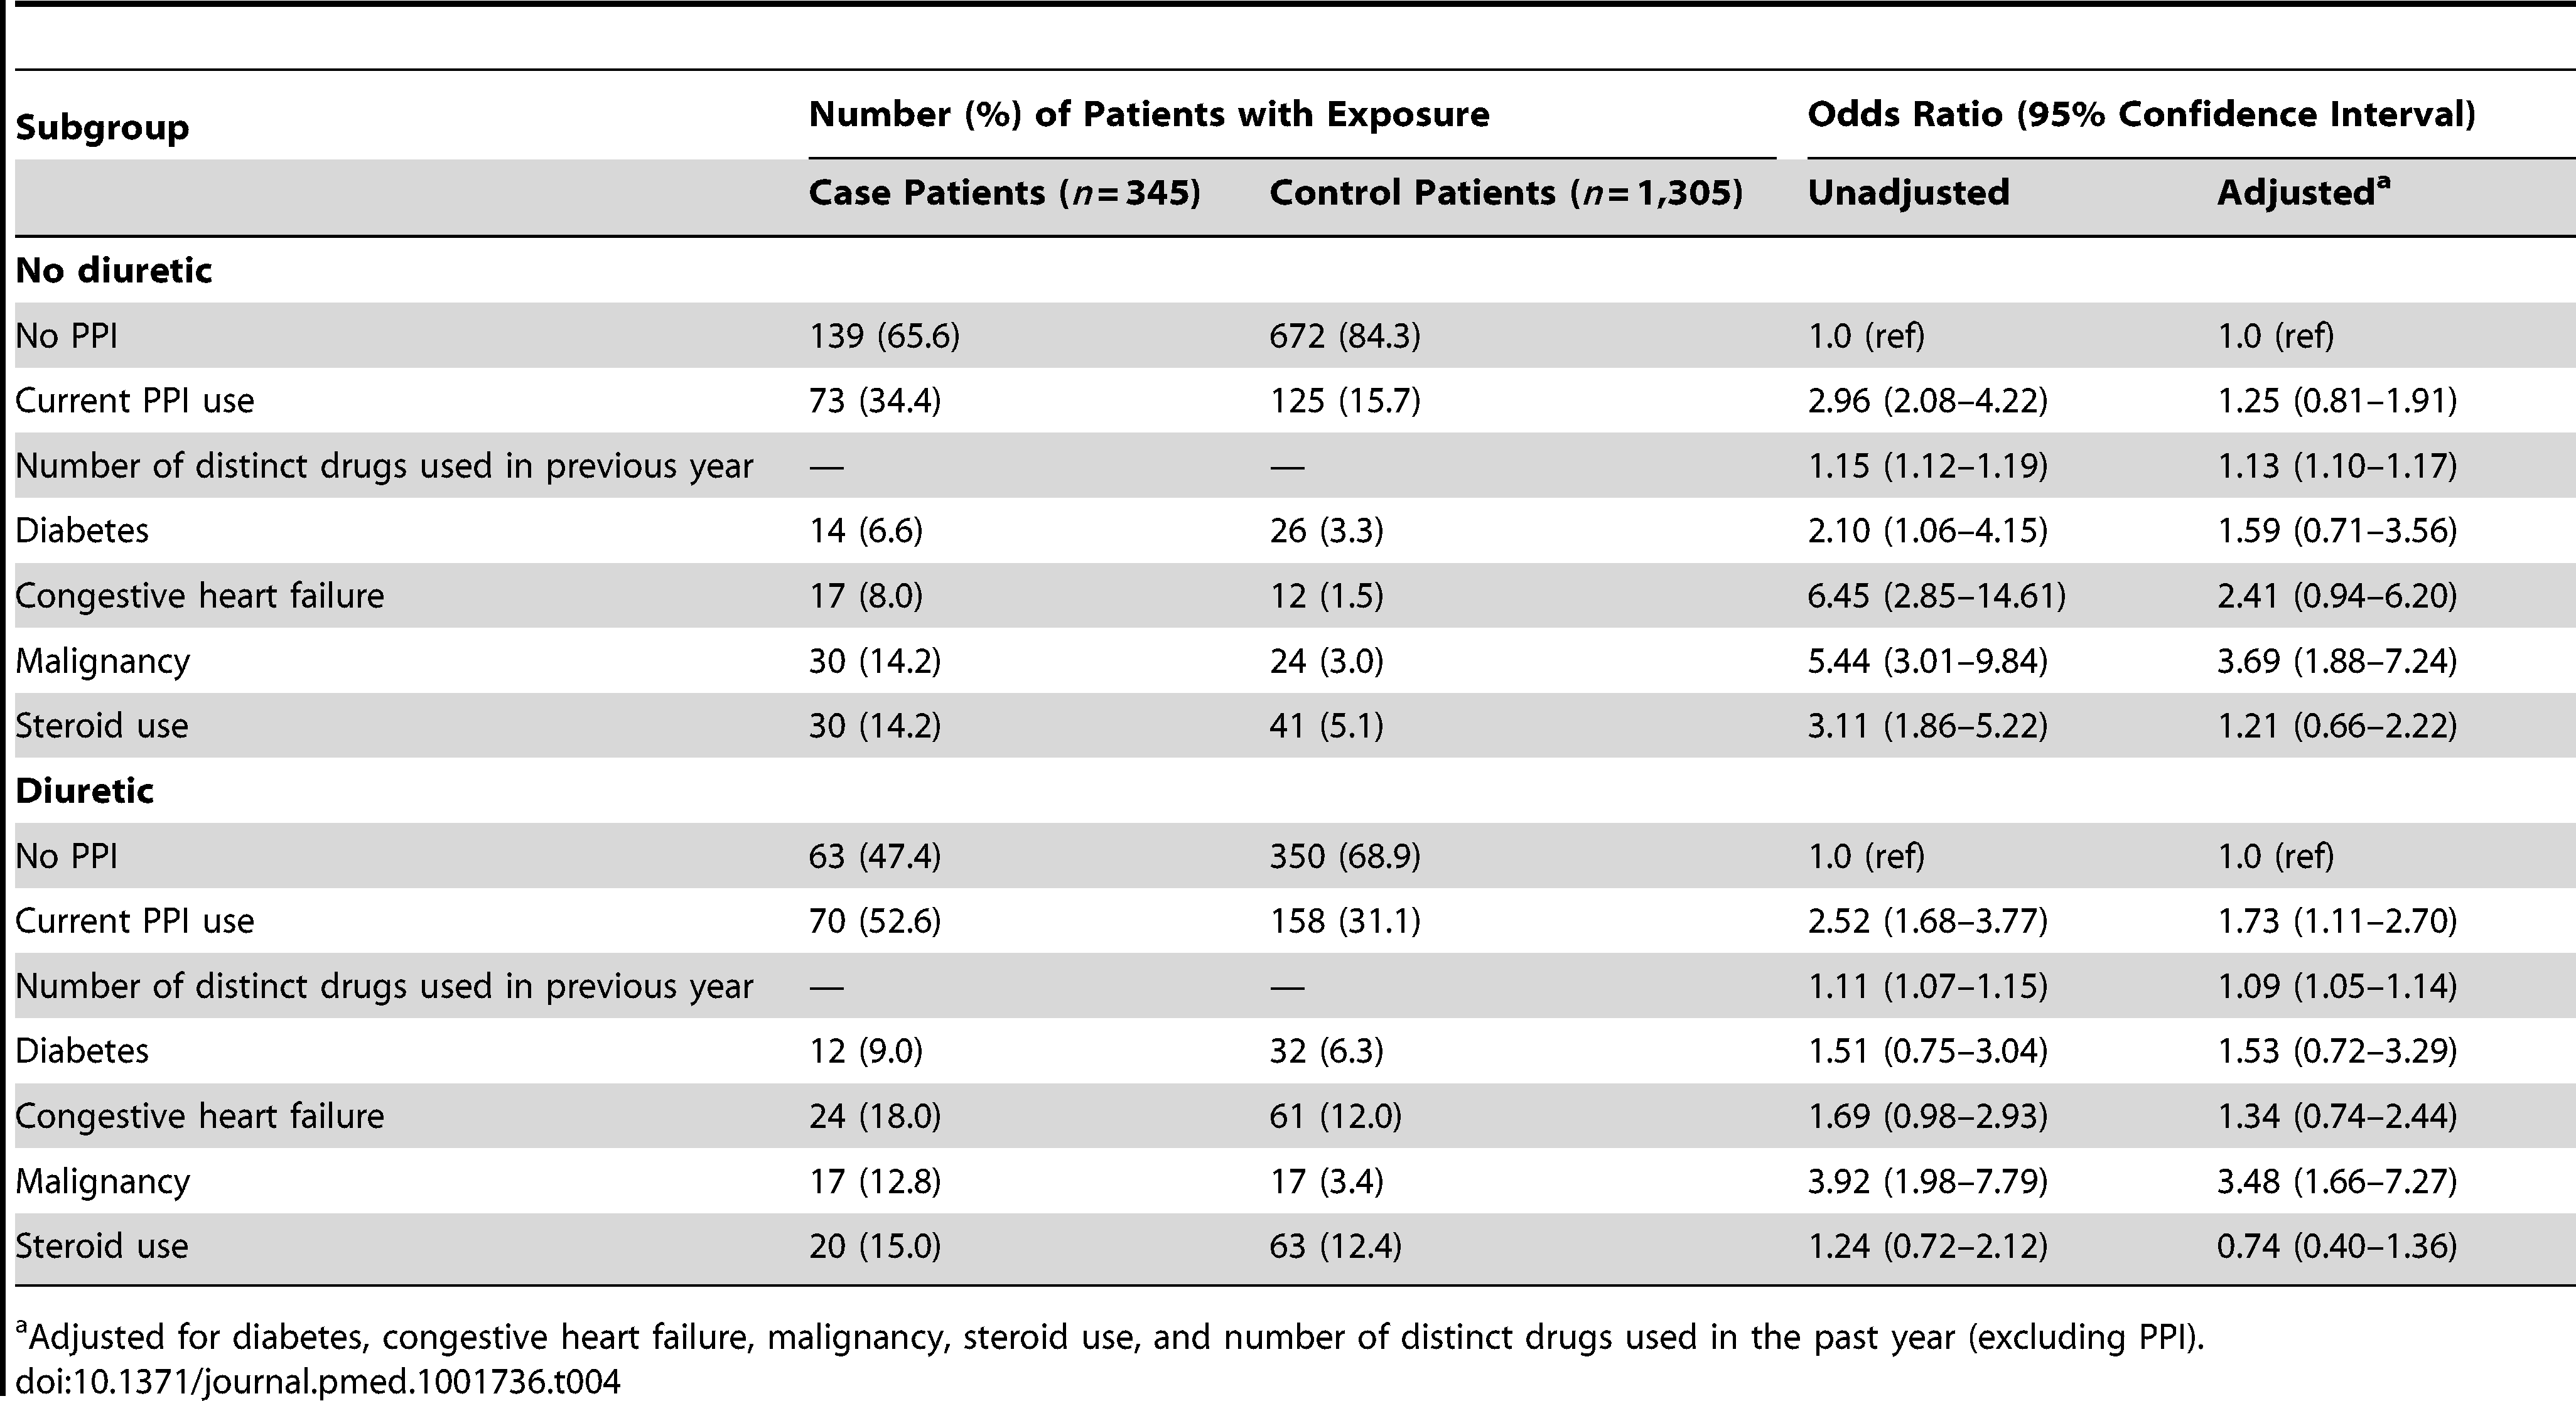 Proton pump inhibitor use and hospitalization with hypomagnesemia stratified by diuretic use.